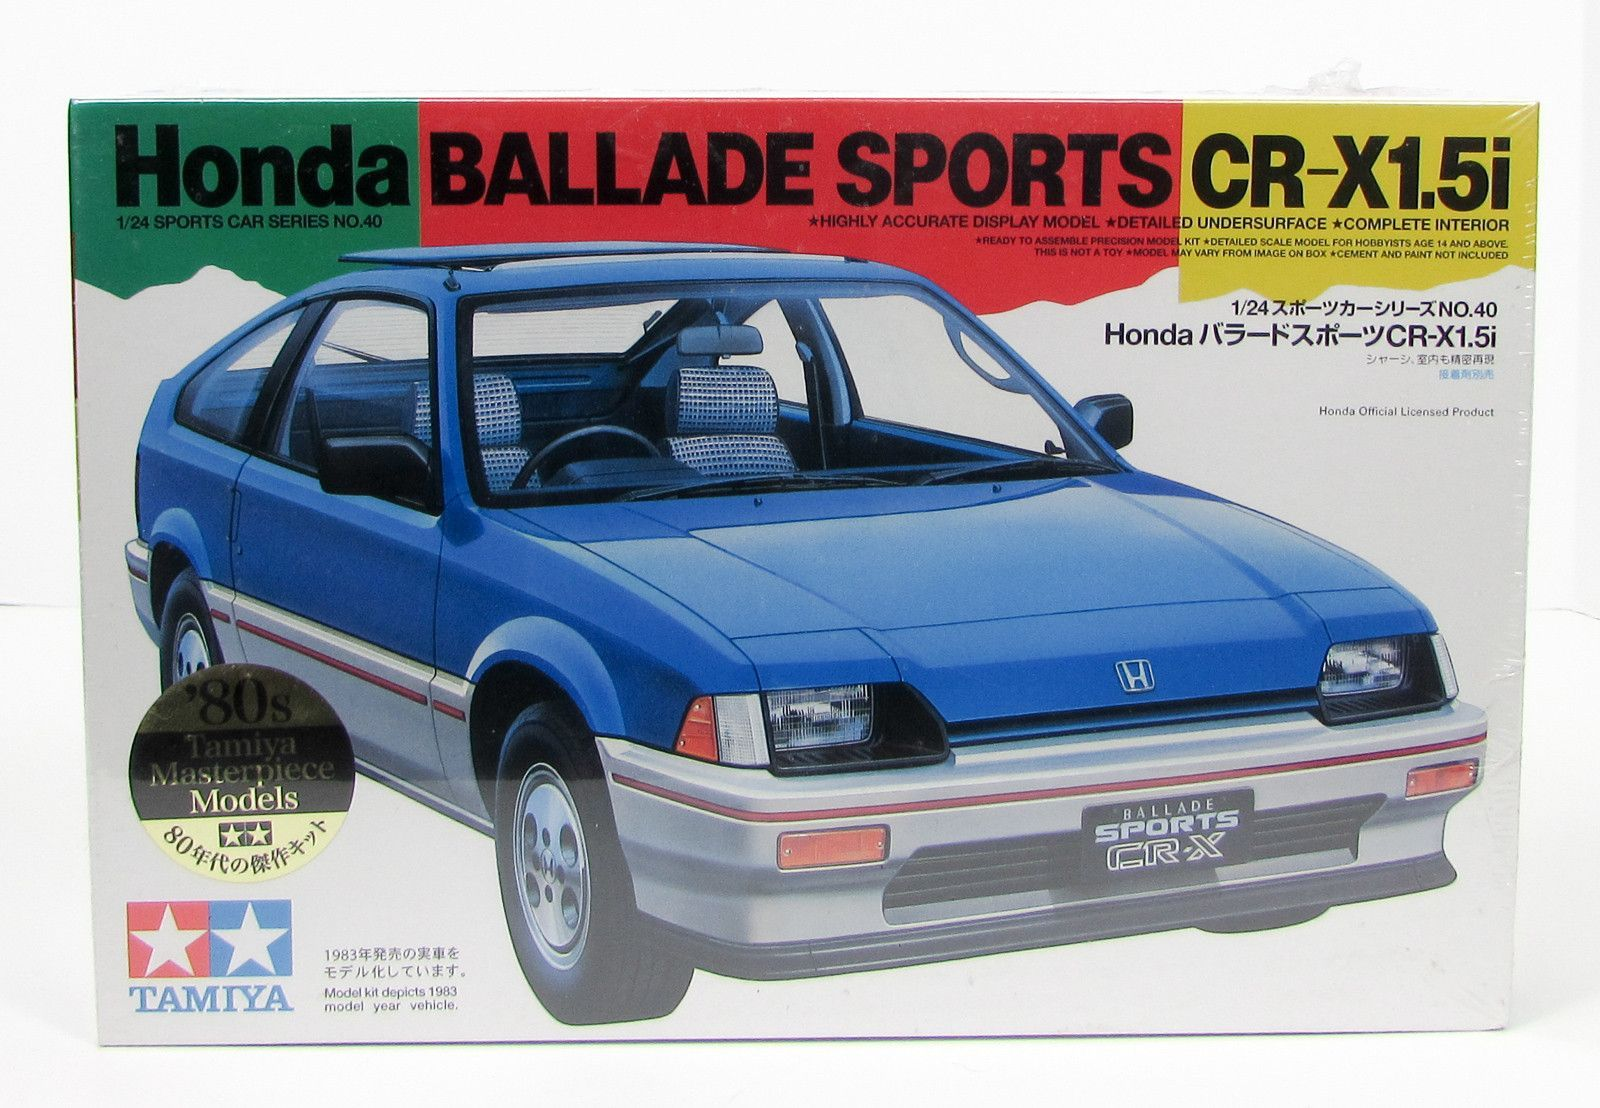 This Honda Ballade CR X Car Model Kit Is Made By Tamiya In 1 24 Scale The Debuted 1983 And Became A Favorite Sports Hatchback Throughout 1980s